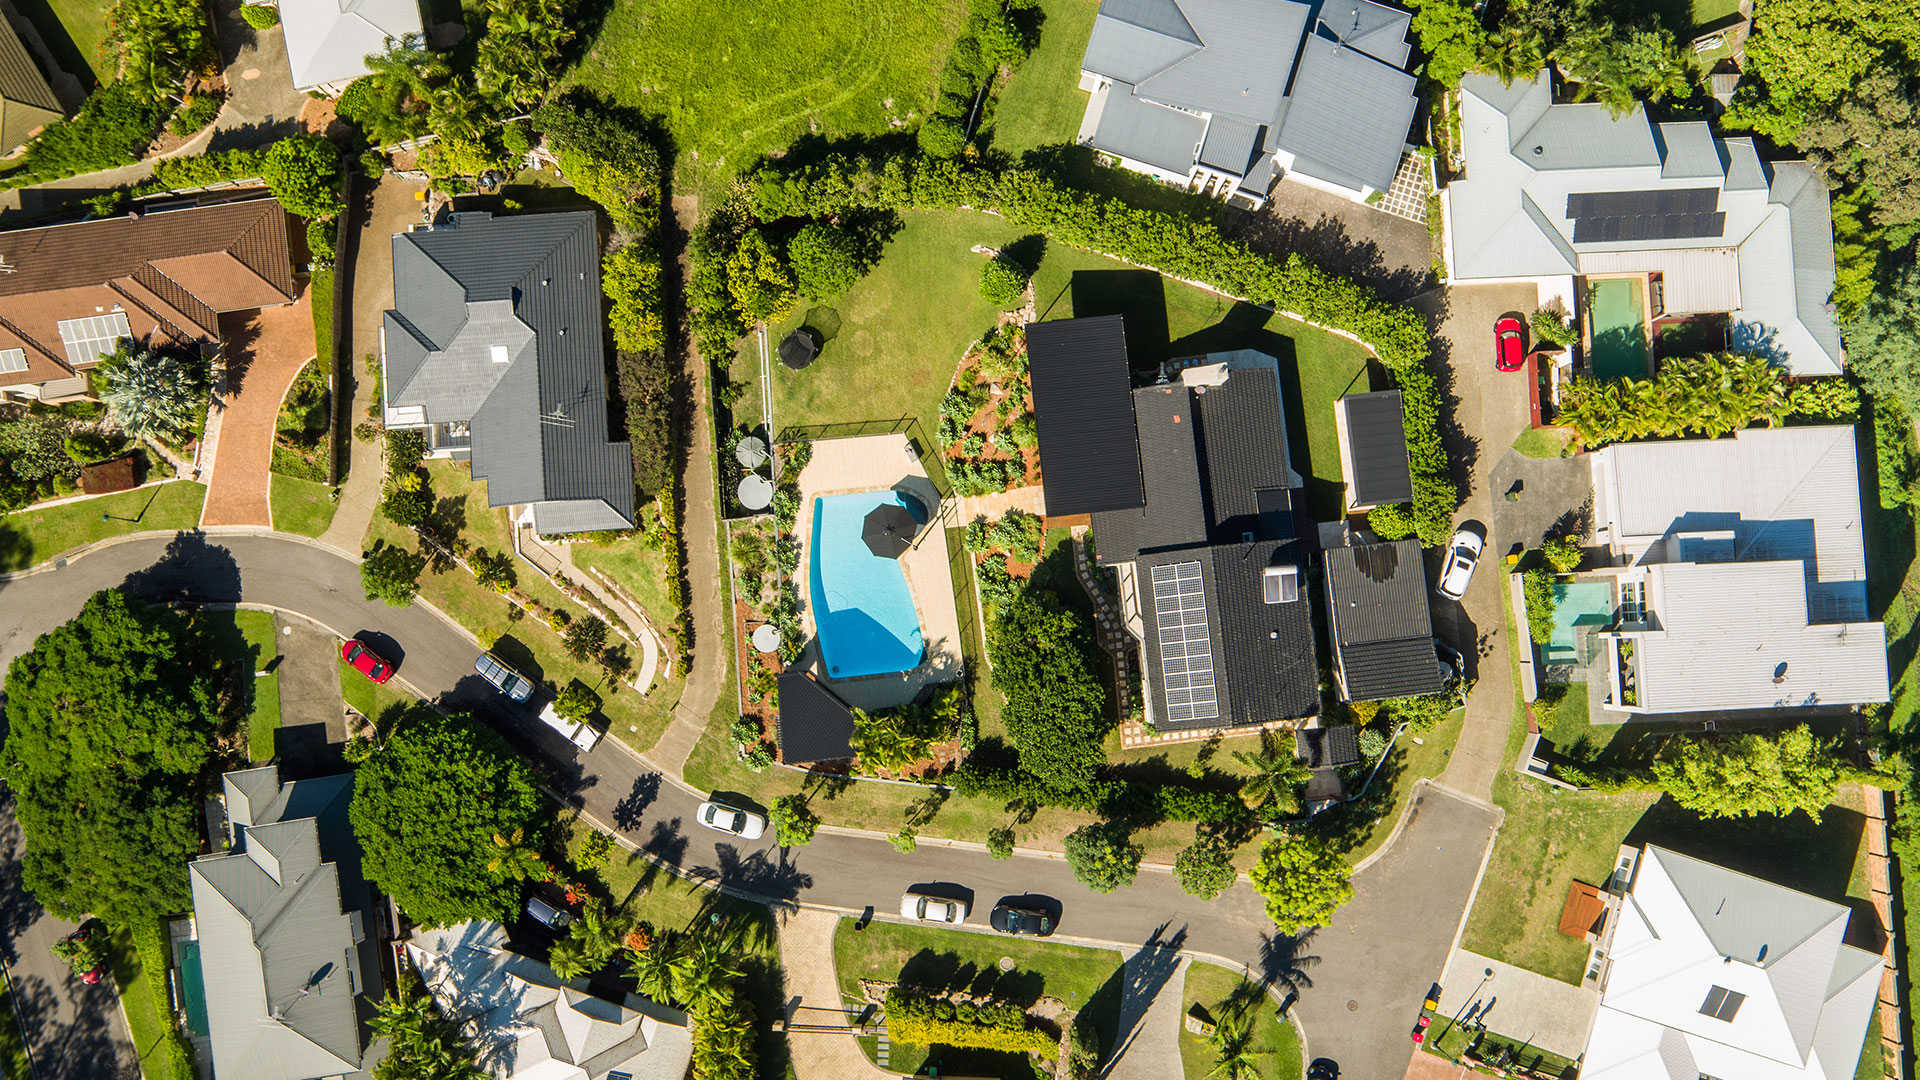 Aerial drone photography for real estate sales. © FLYFILM